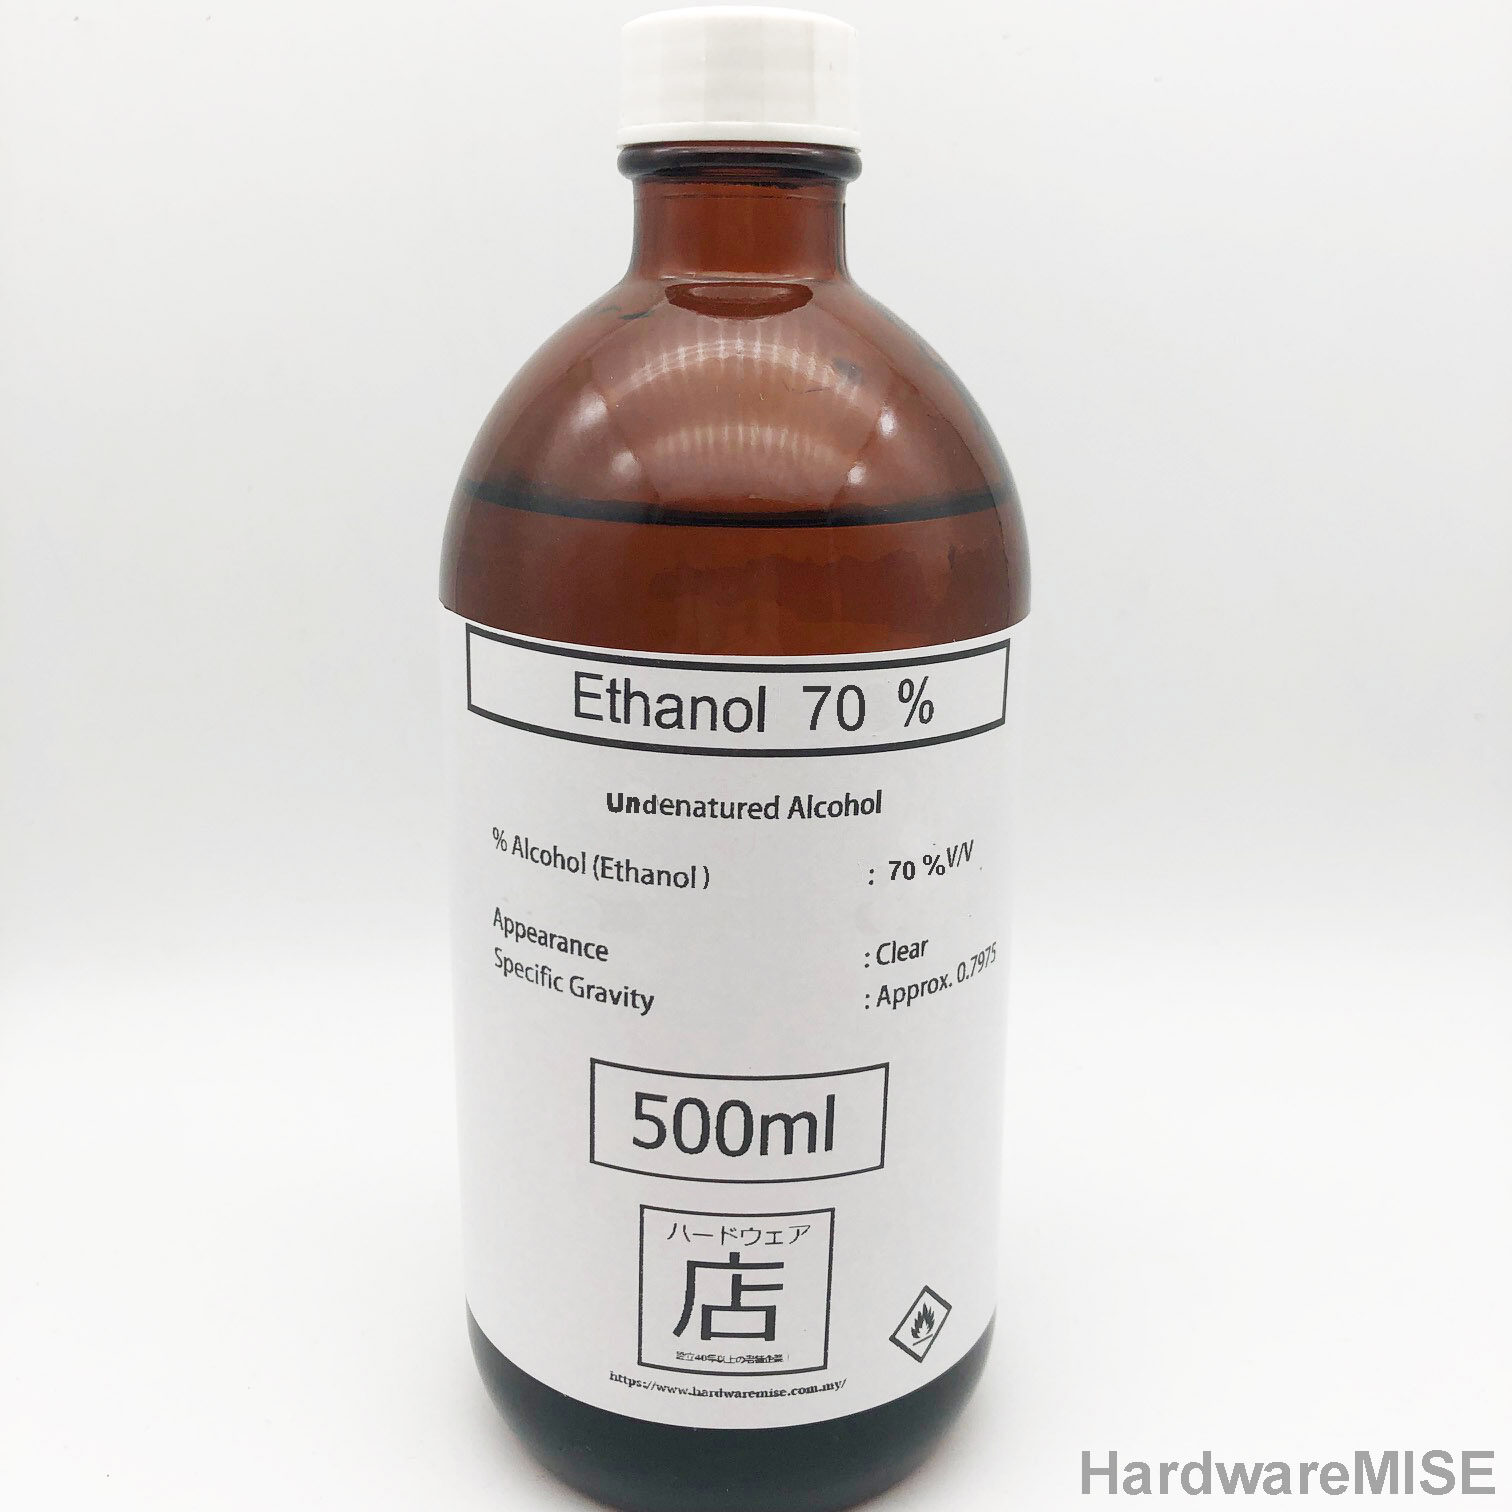 Ethanol 70% Sanitizer Food Grade Undenatured Ethyl Alcohol Potable Alcohol Disinfectant 消毒 乙醇 500ml Malaysia Supplier